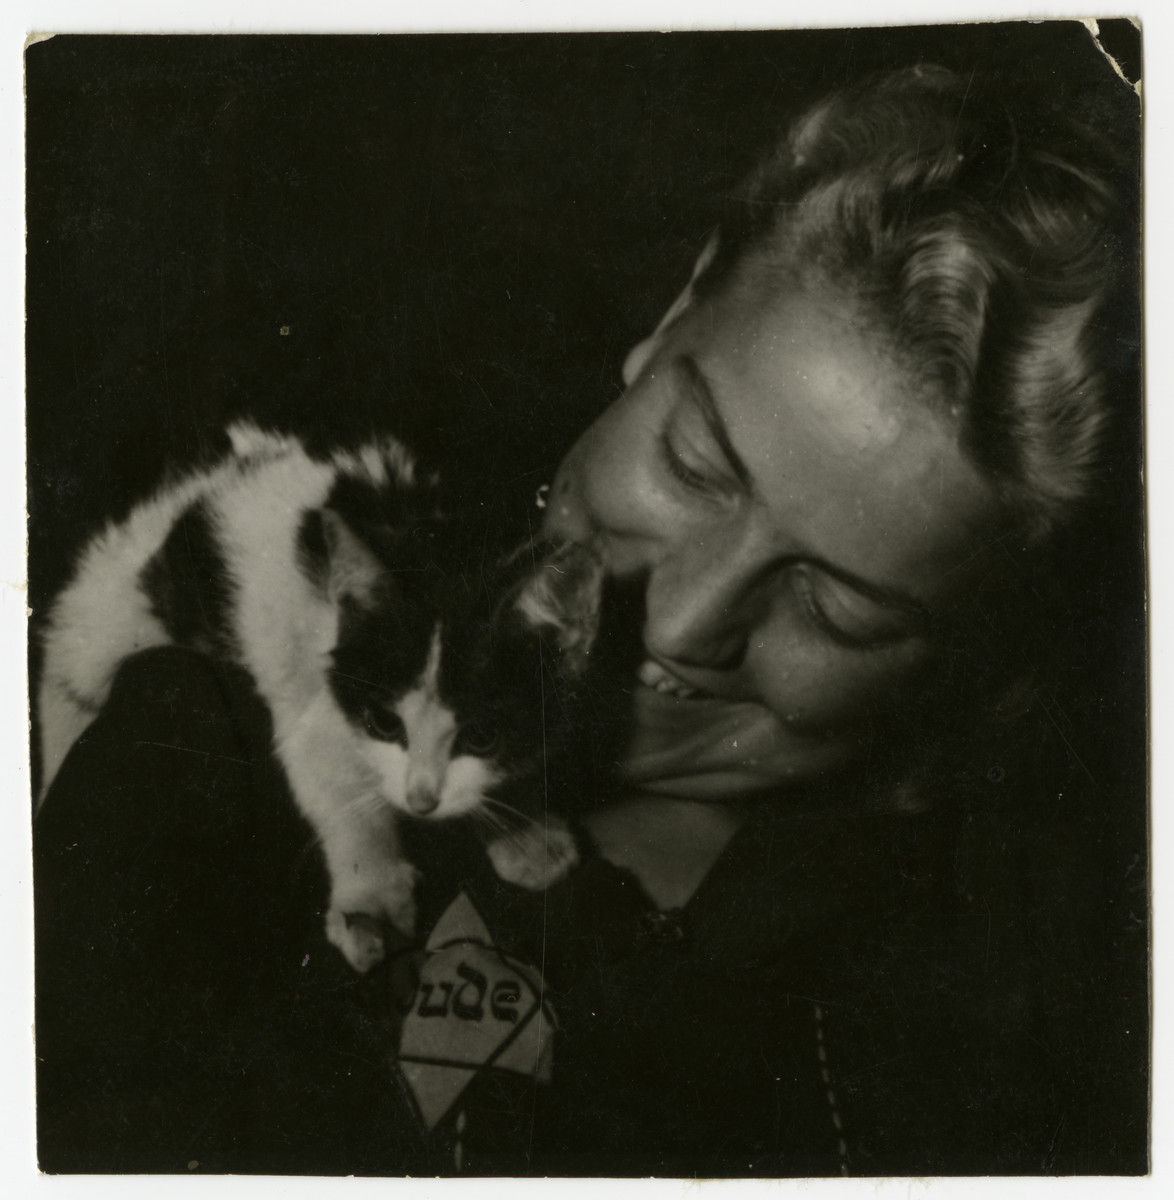 Rozka Grossman plays with a cat that she hid in her apartment in the Lodz ghetto.